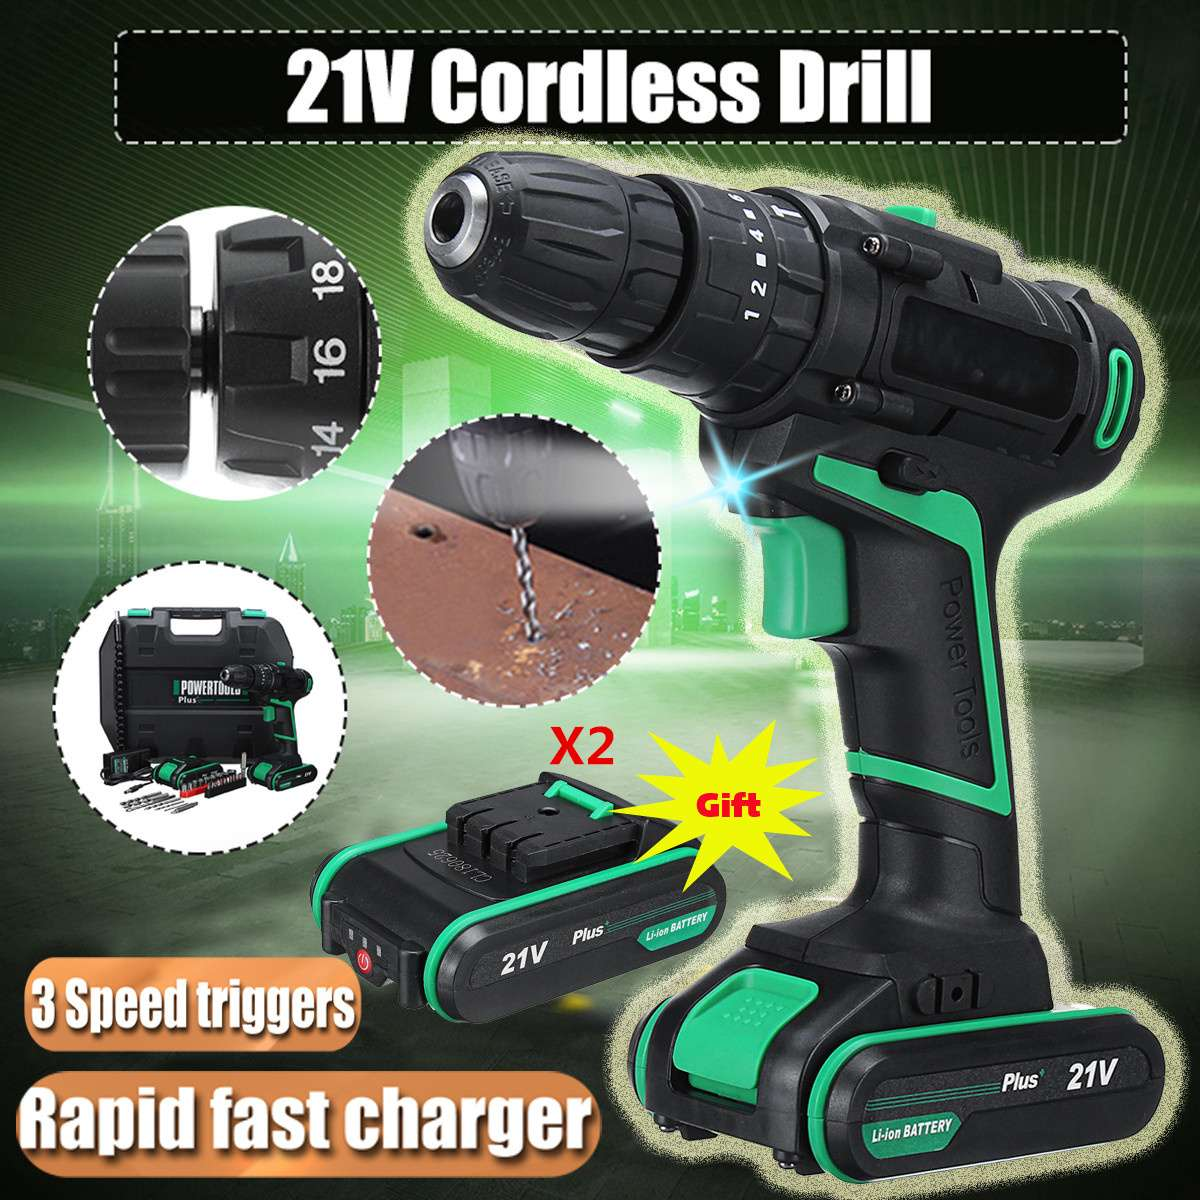 21V Impact Drill Electric Screwdriver Electric Hand Drill Battery Cordless Hammer Drill Home DIY Power Tools + 2 Li-ion Battery цены